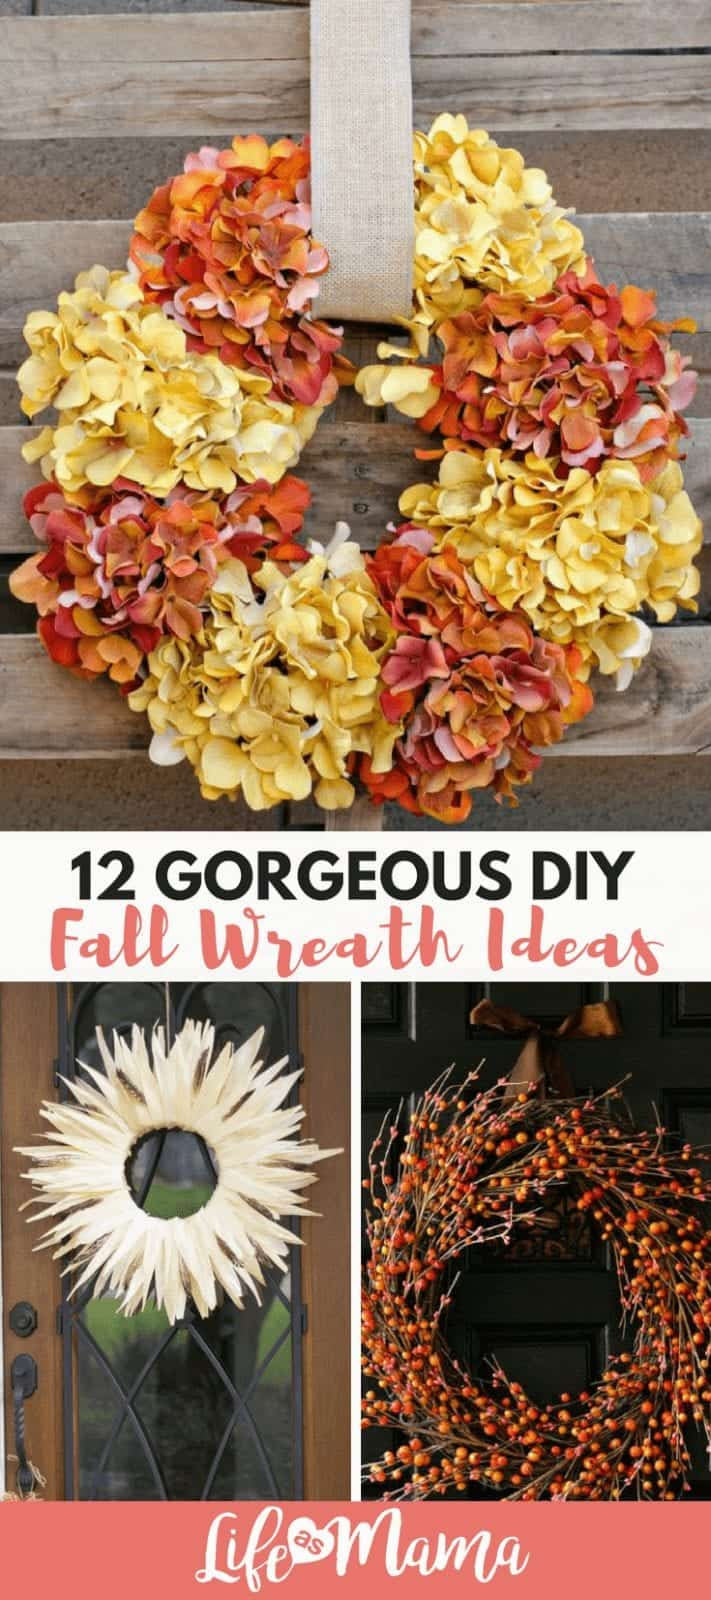 12 Gorgeous DIY Fall Wreath Ideas